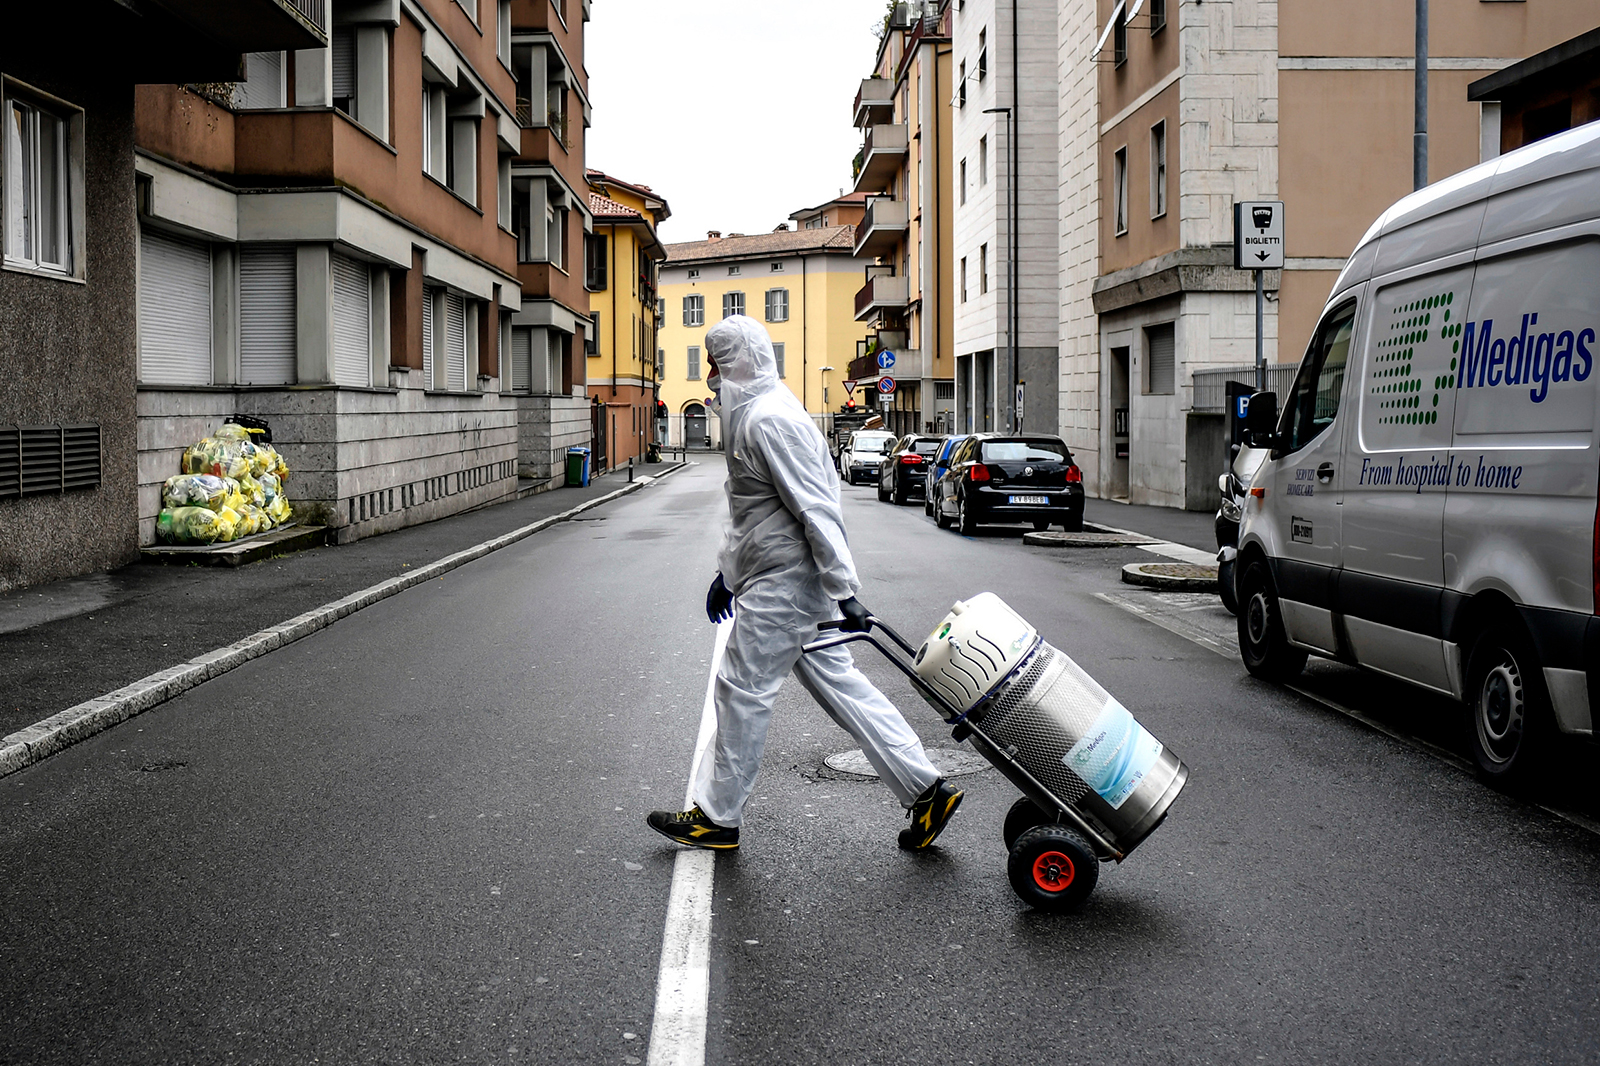 A staffer delivers a medical oxygen tank to coronavirus patients being treated at home in Bergamo on March 31.